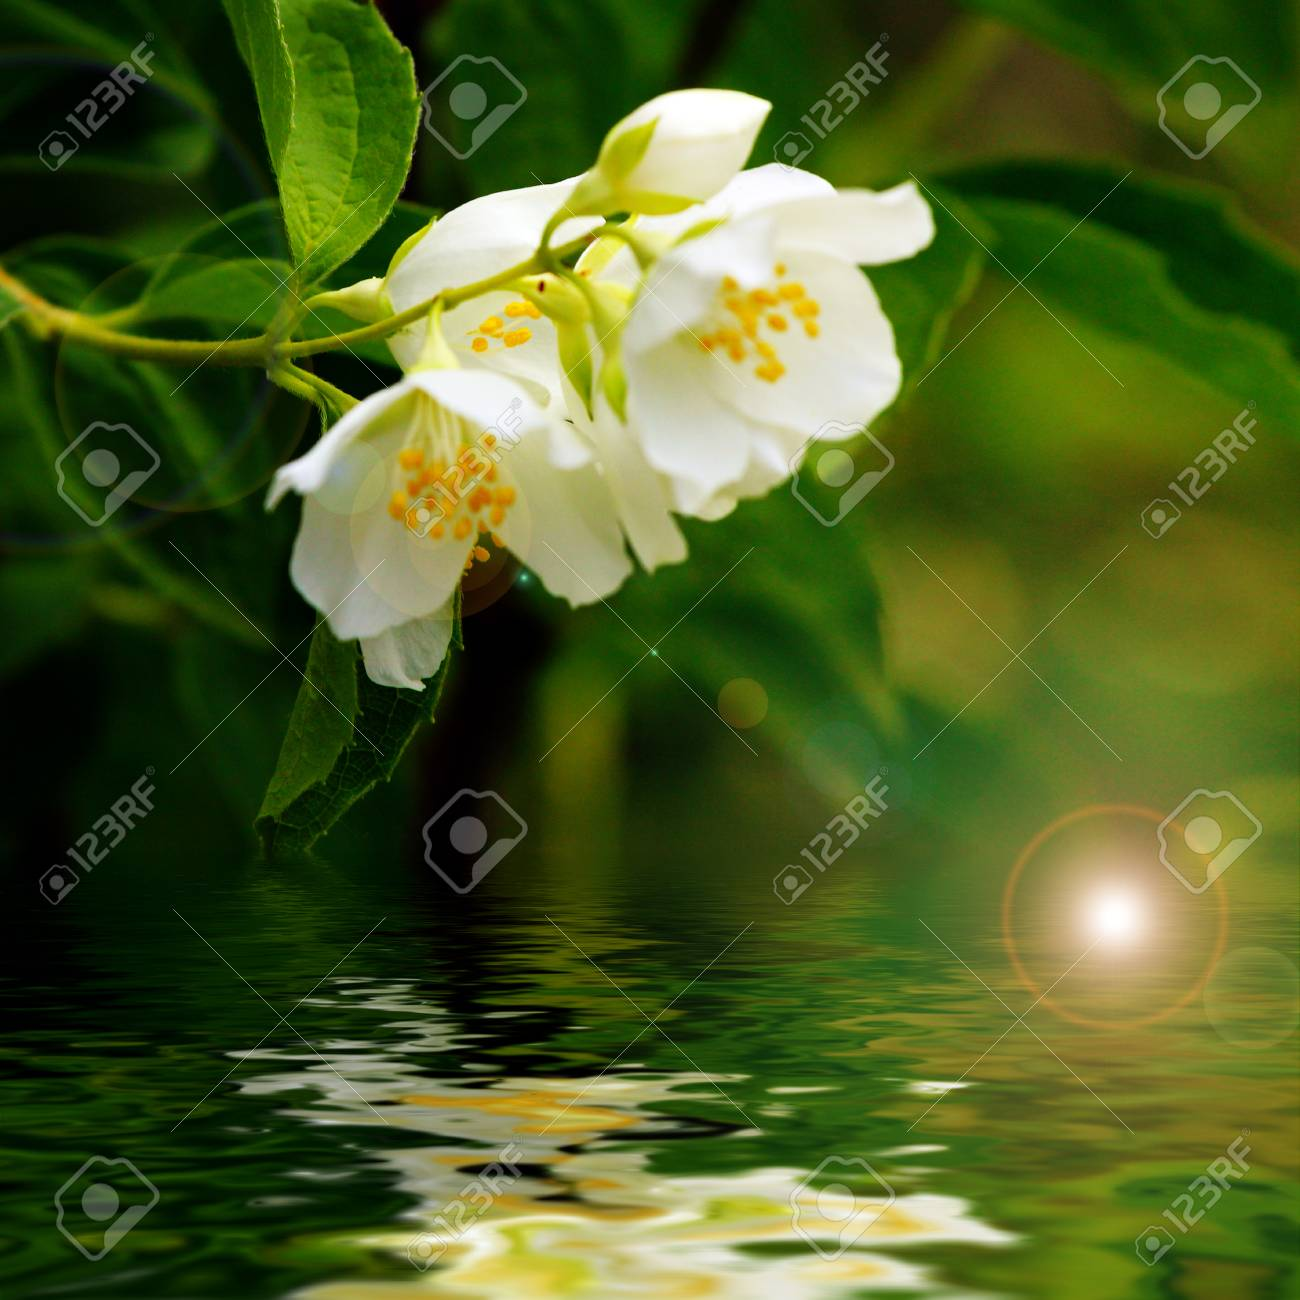 Beautiful Jasmine Flower Reflection In Water Surface Stock Photo